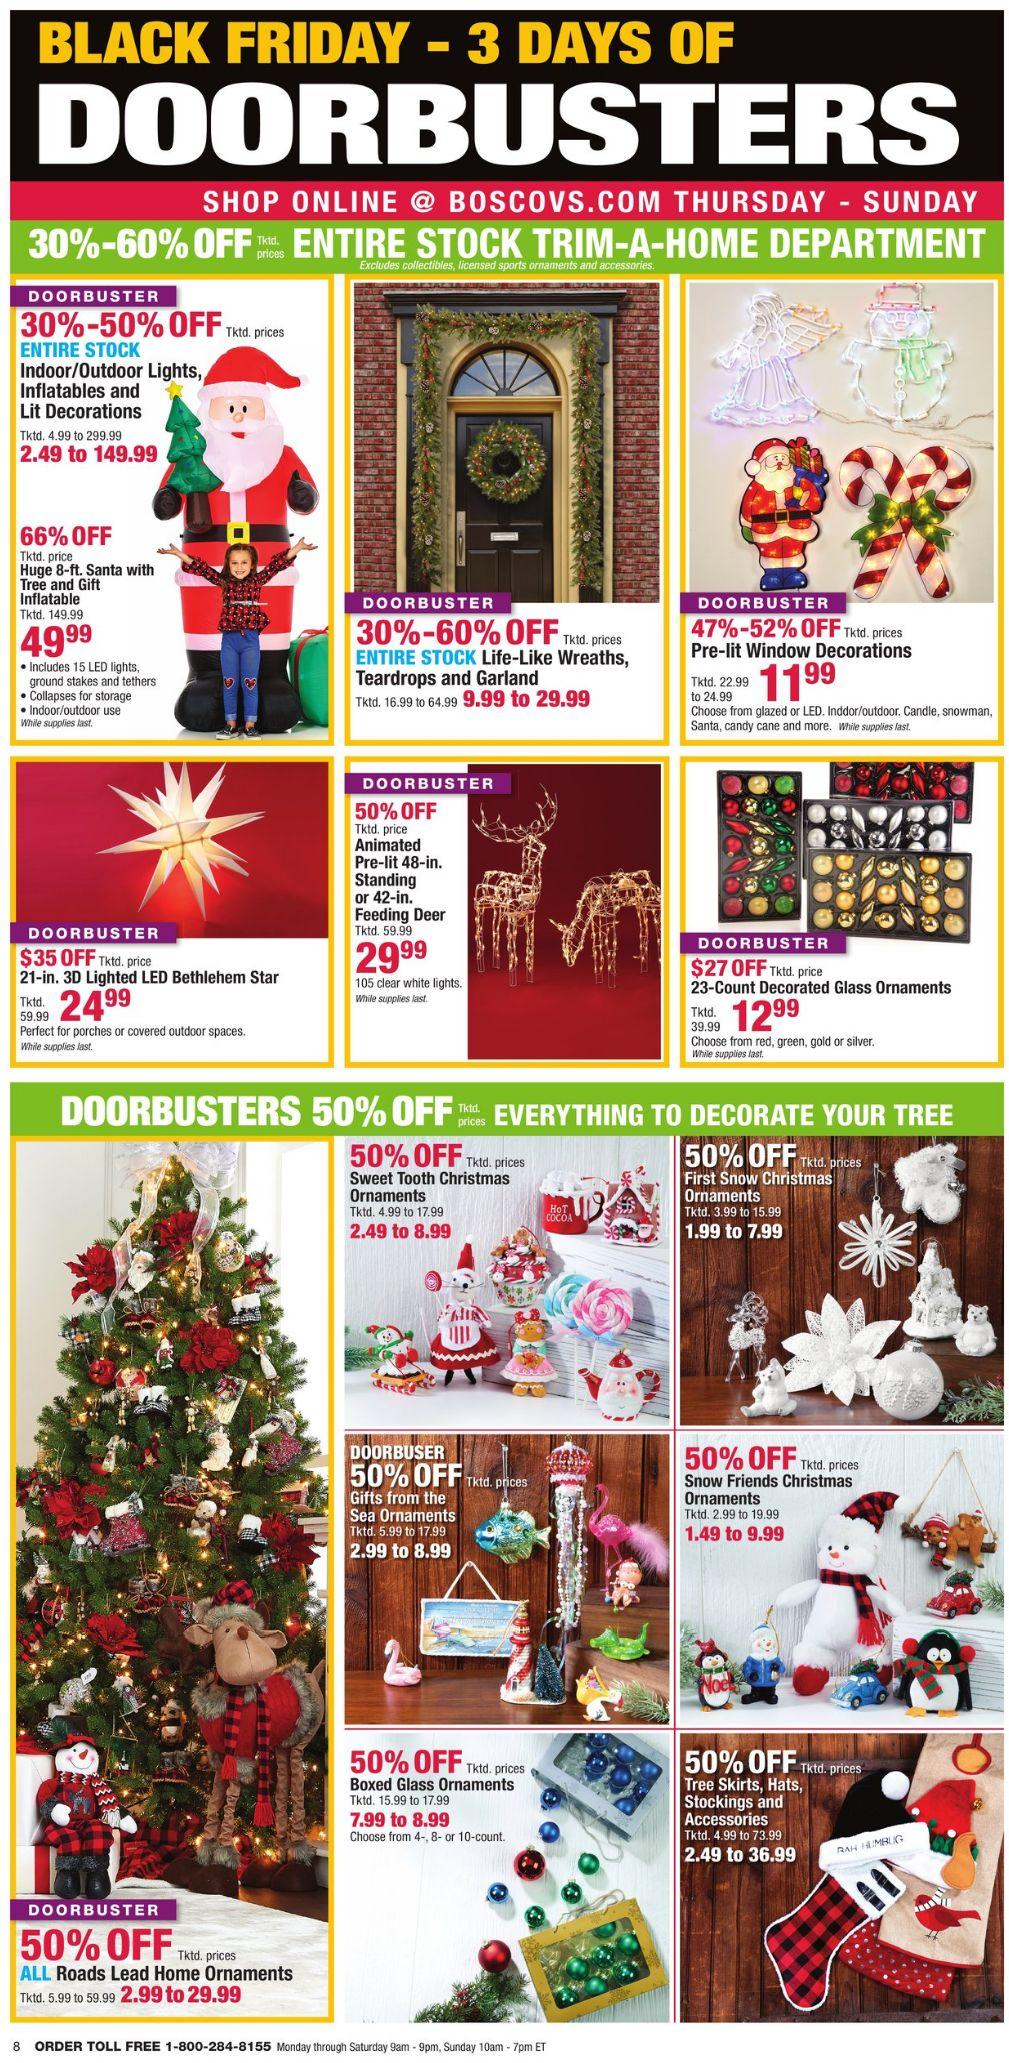 Boscov's Black Friday 2020 Page 8